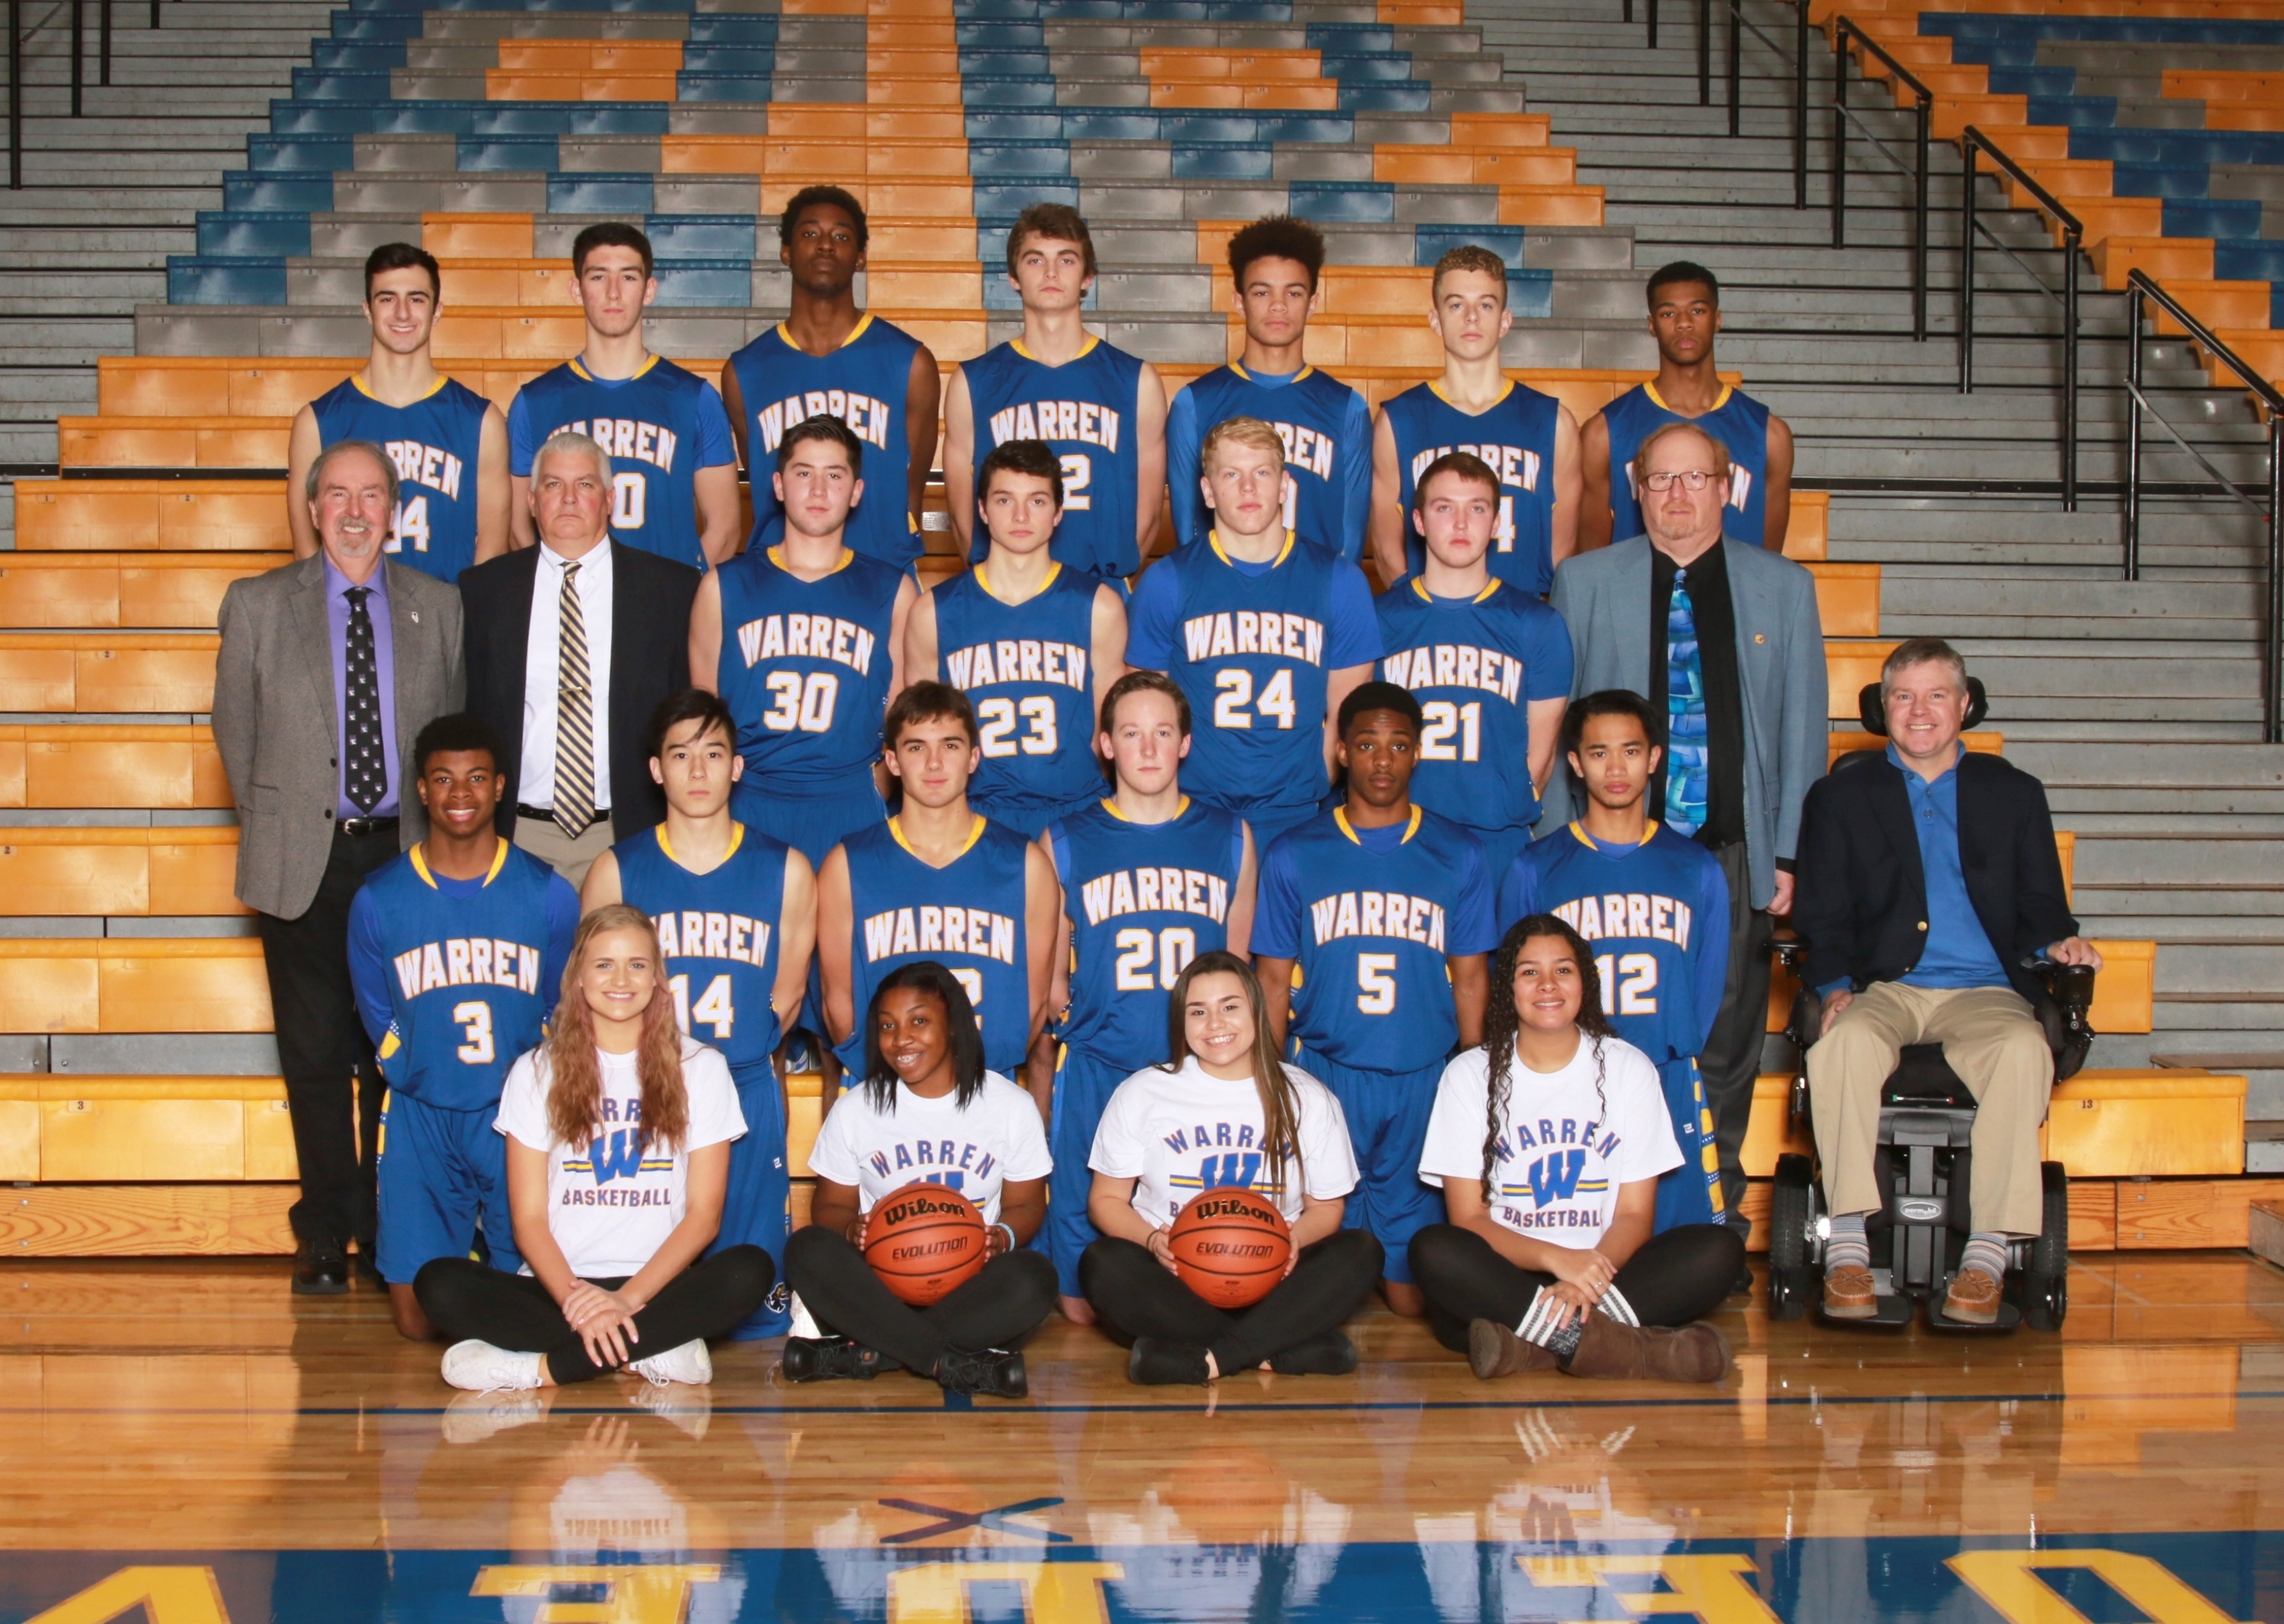 warren high school basketball